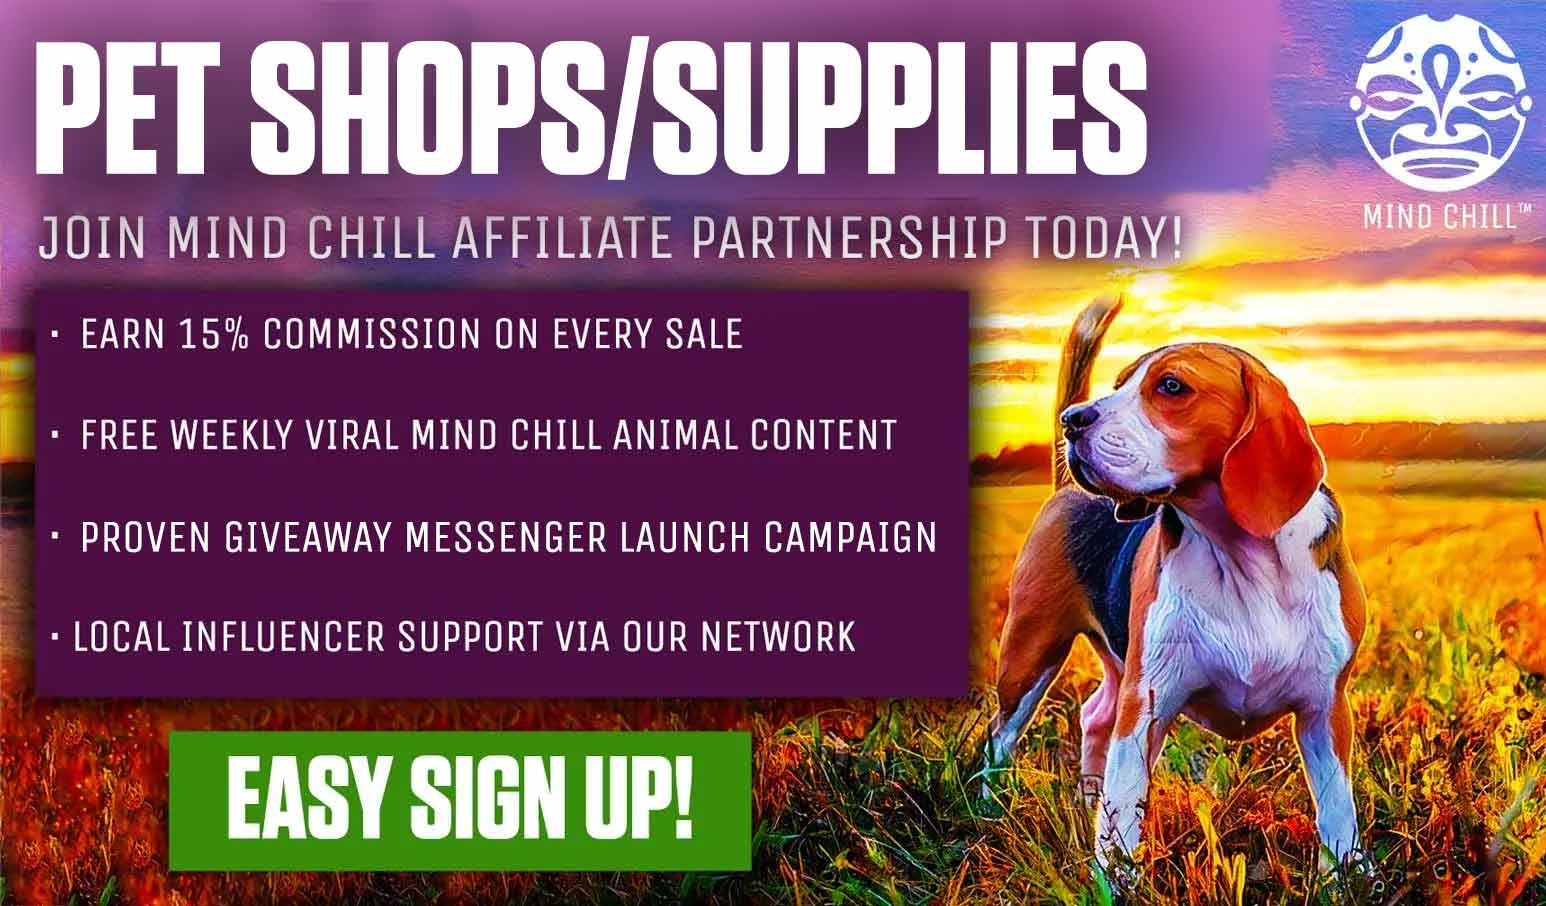 Pet shop and pet suppliers mind chill affiliate partnership registration